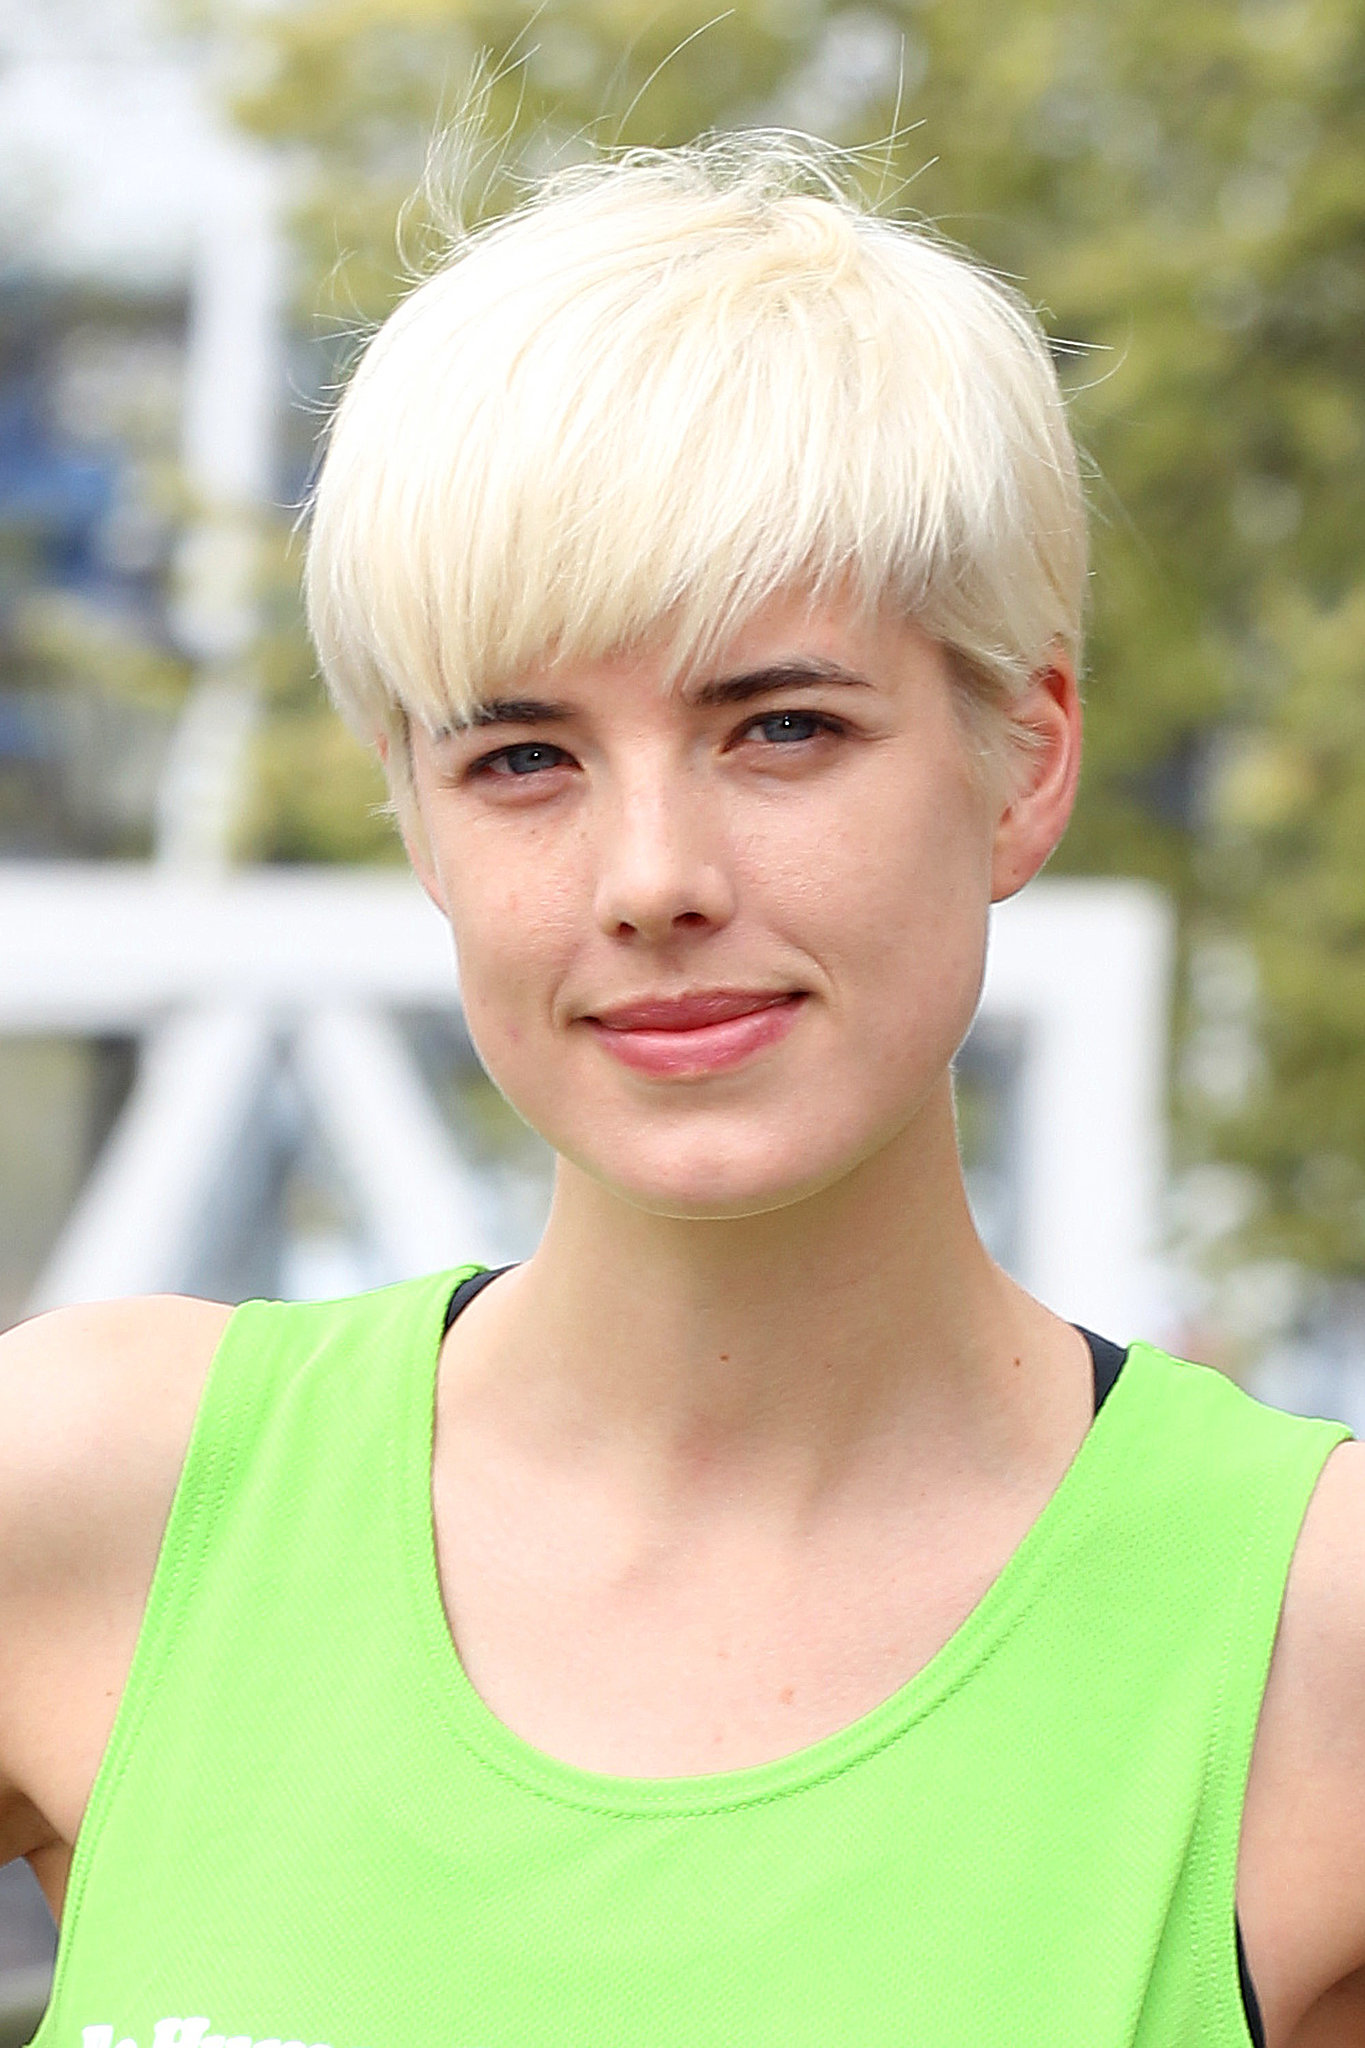 For a more boyish take on the chop, opt for a cut like Agyness Deyn, whose pixie was more bowl cut than business cut.